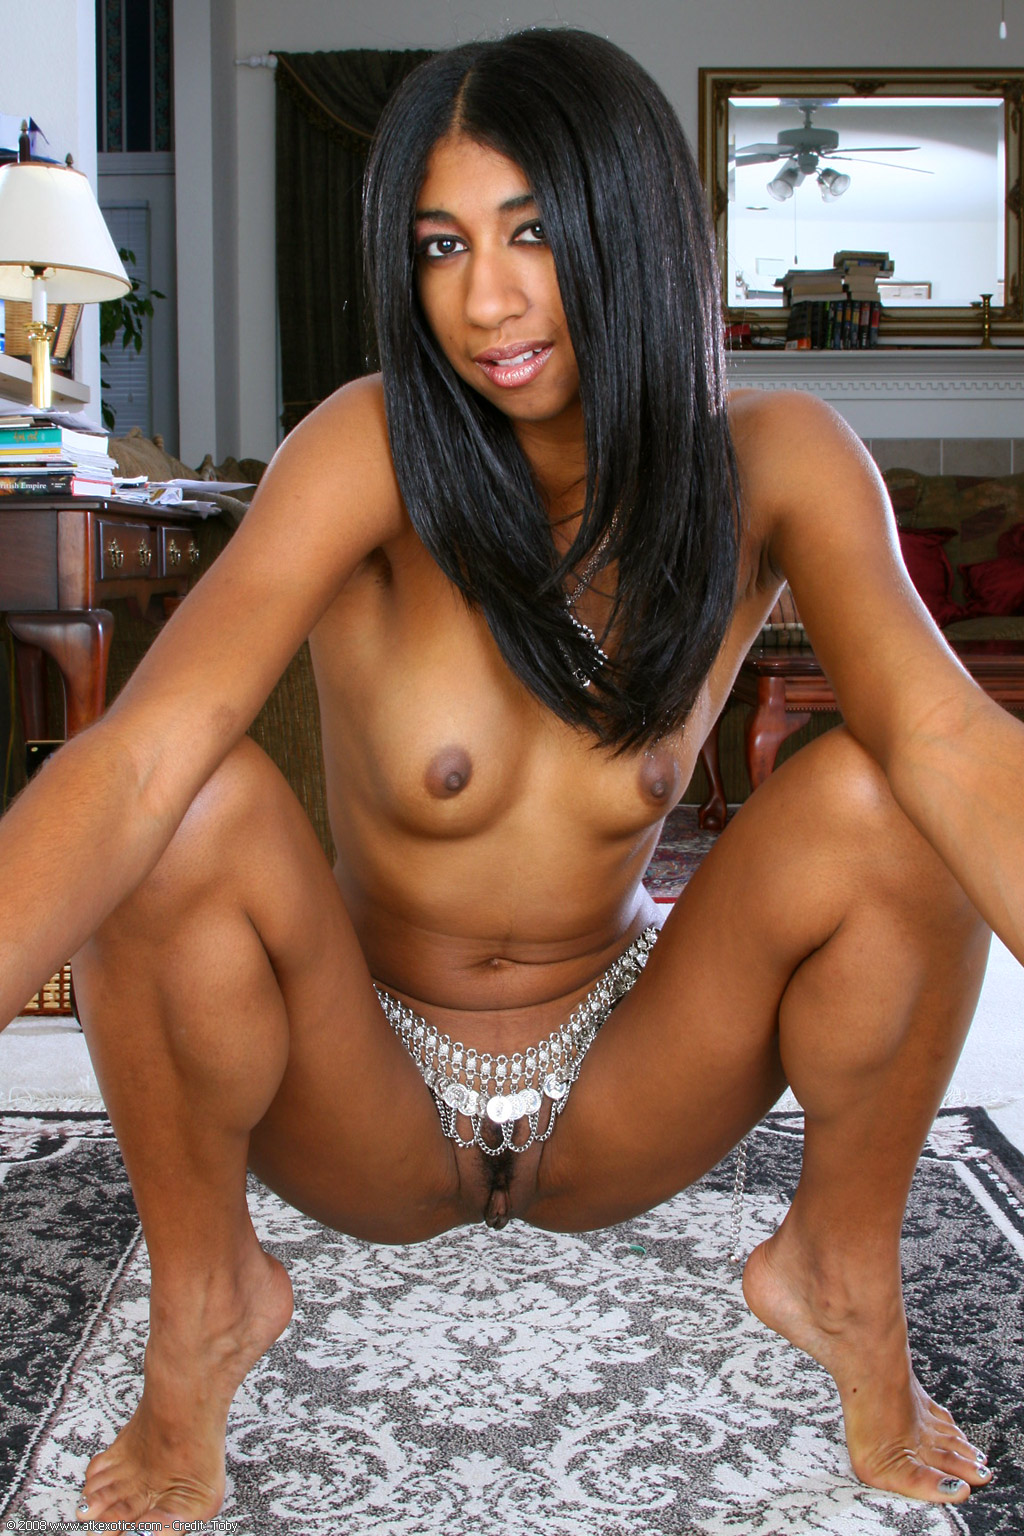 gogeous ebony slut